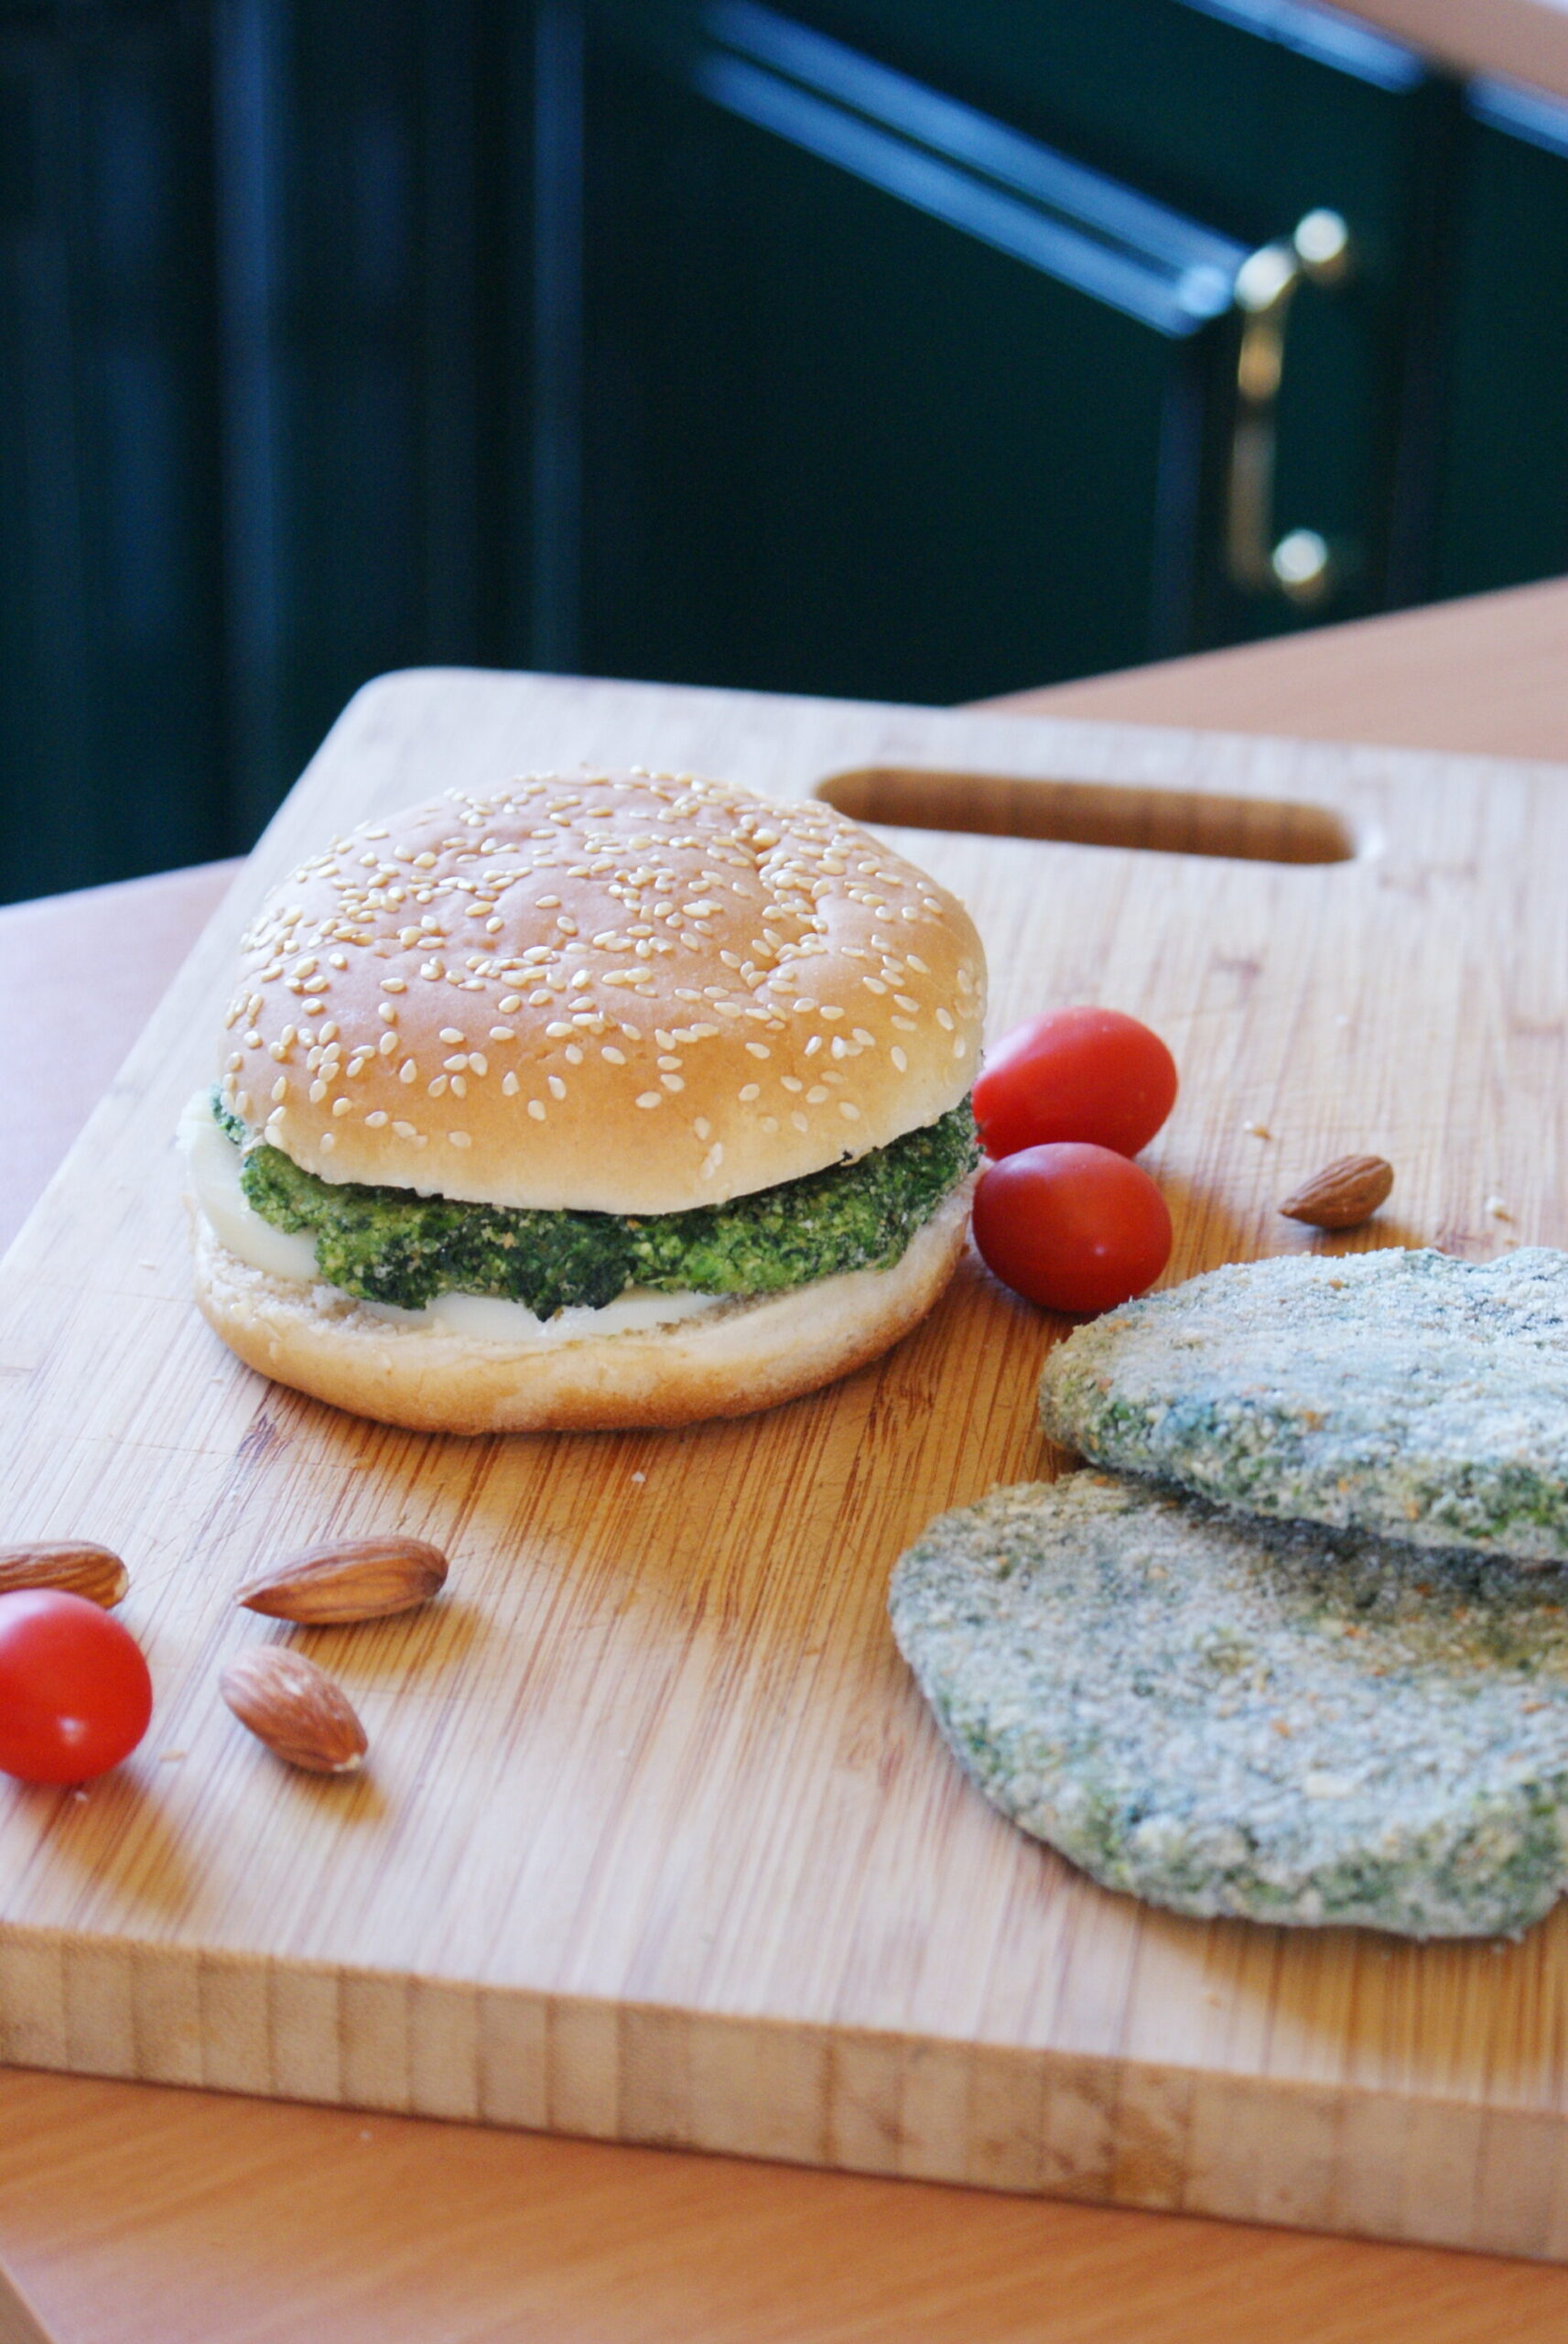 homemade spinach tofu green burgers vegan easy recipe simple 5 minute healthy francinesplaceblog